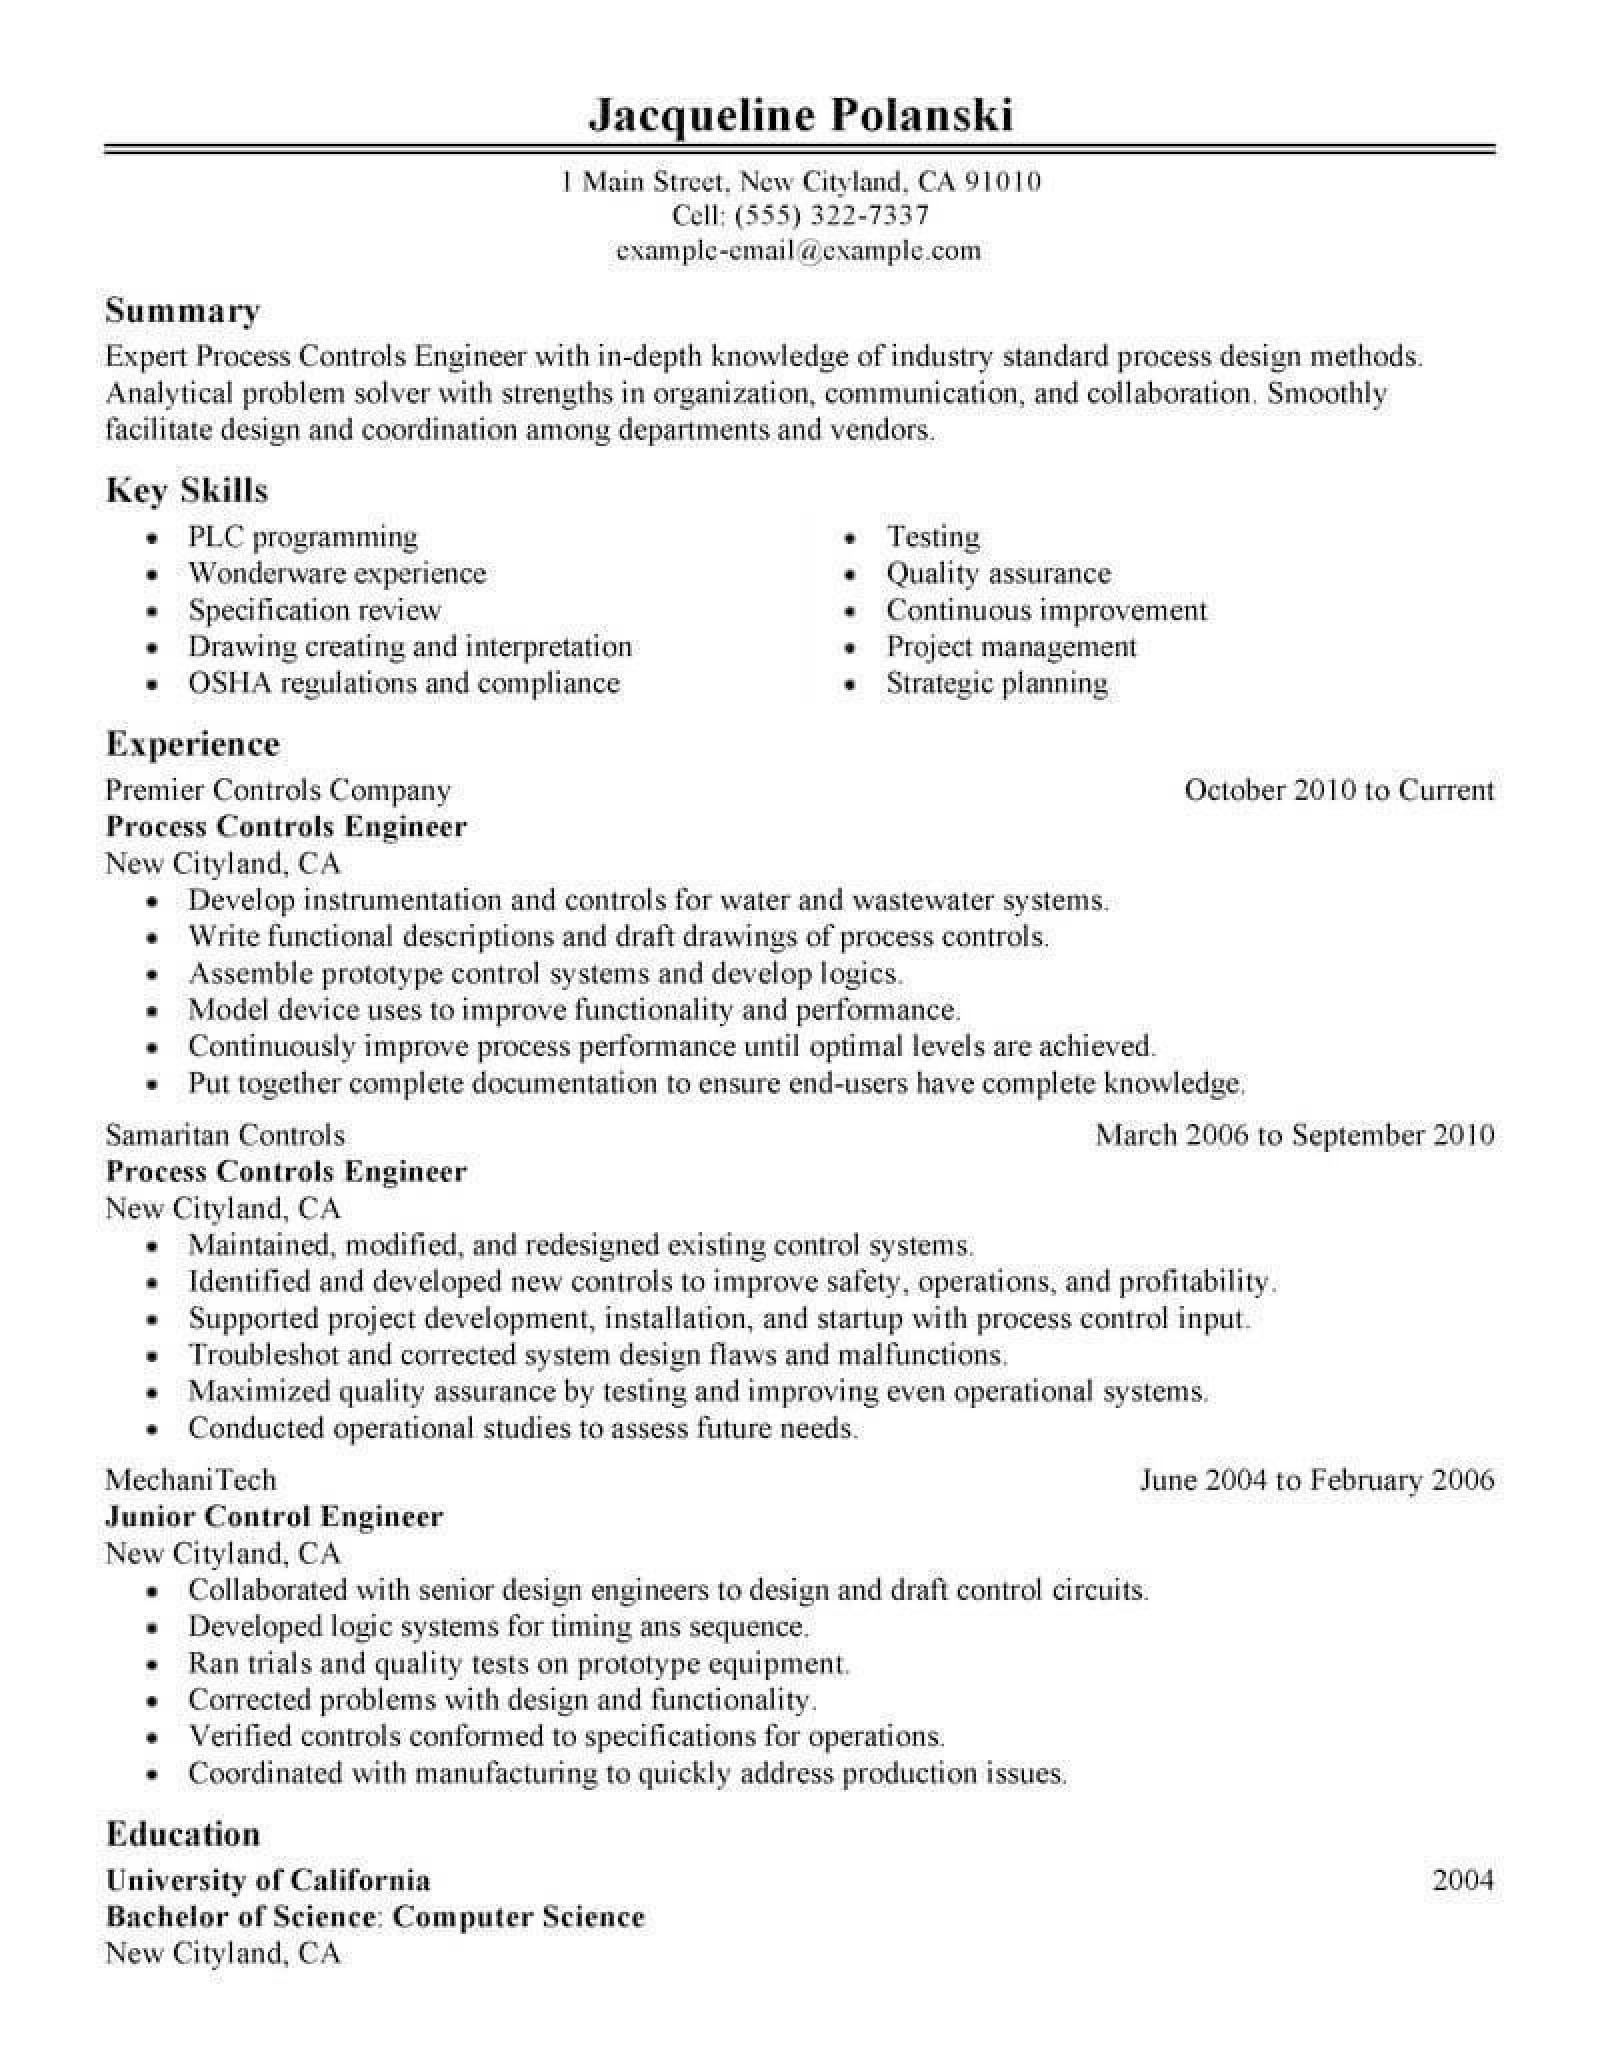 Resume Example for Process Engineer